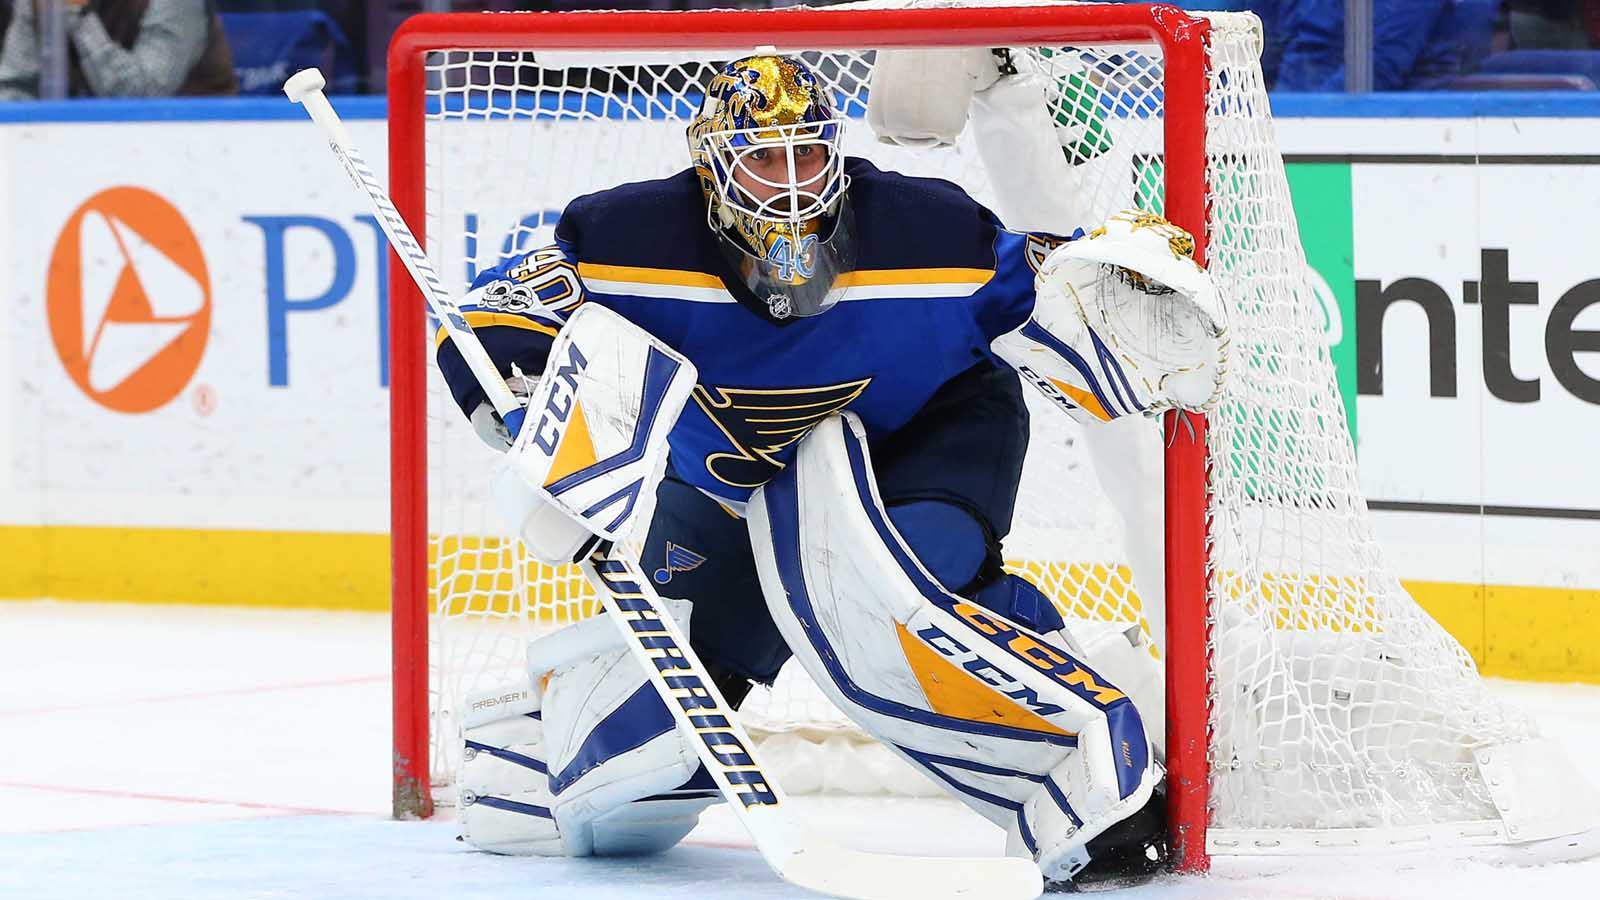 Hutton dominates as Blues defeat Jets 2-0